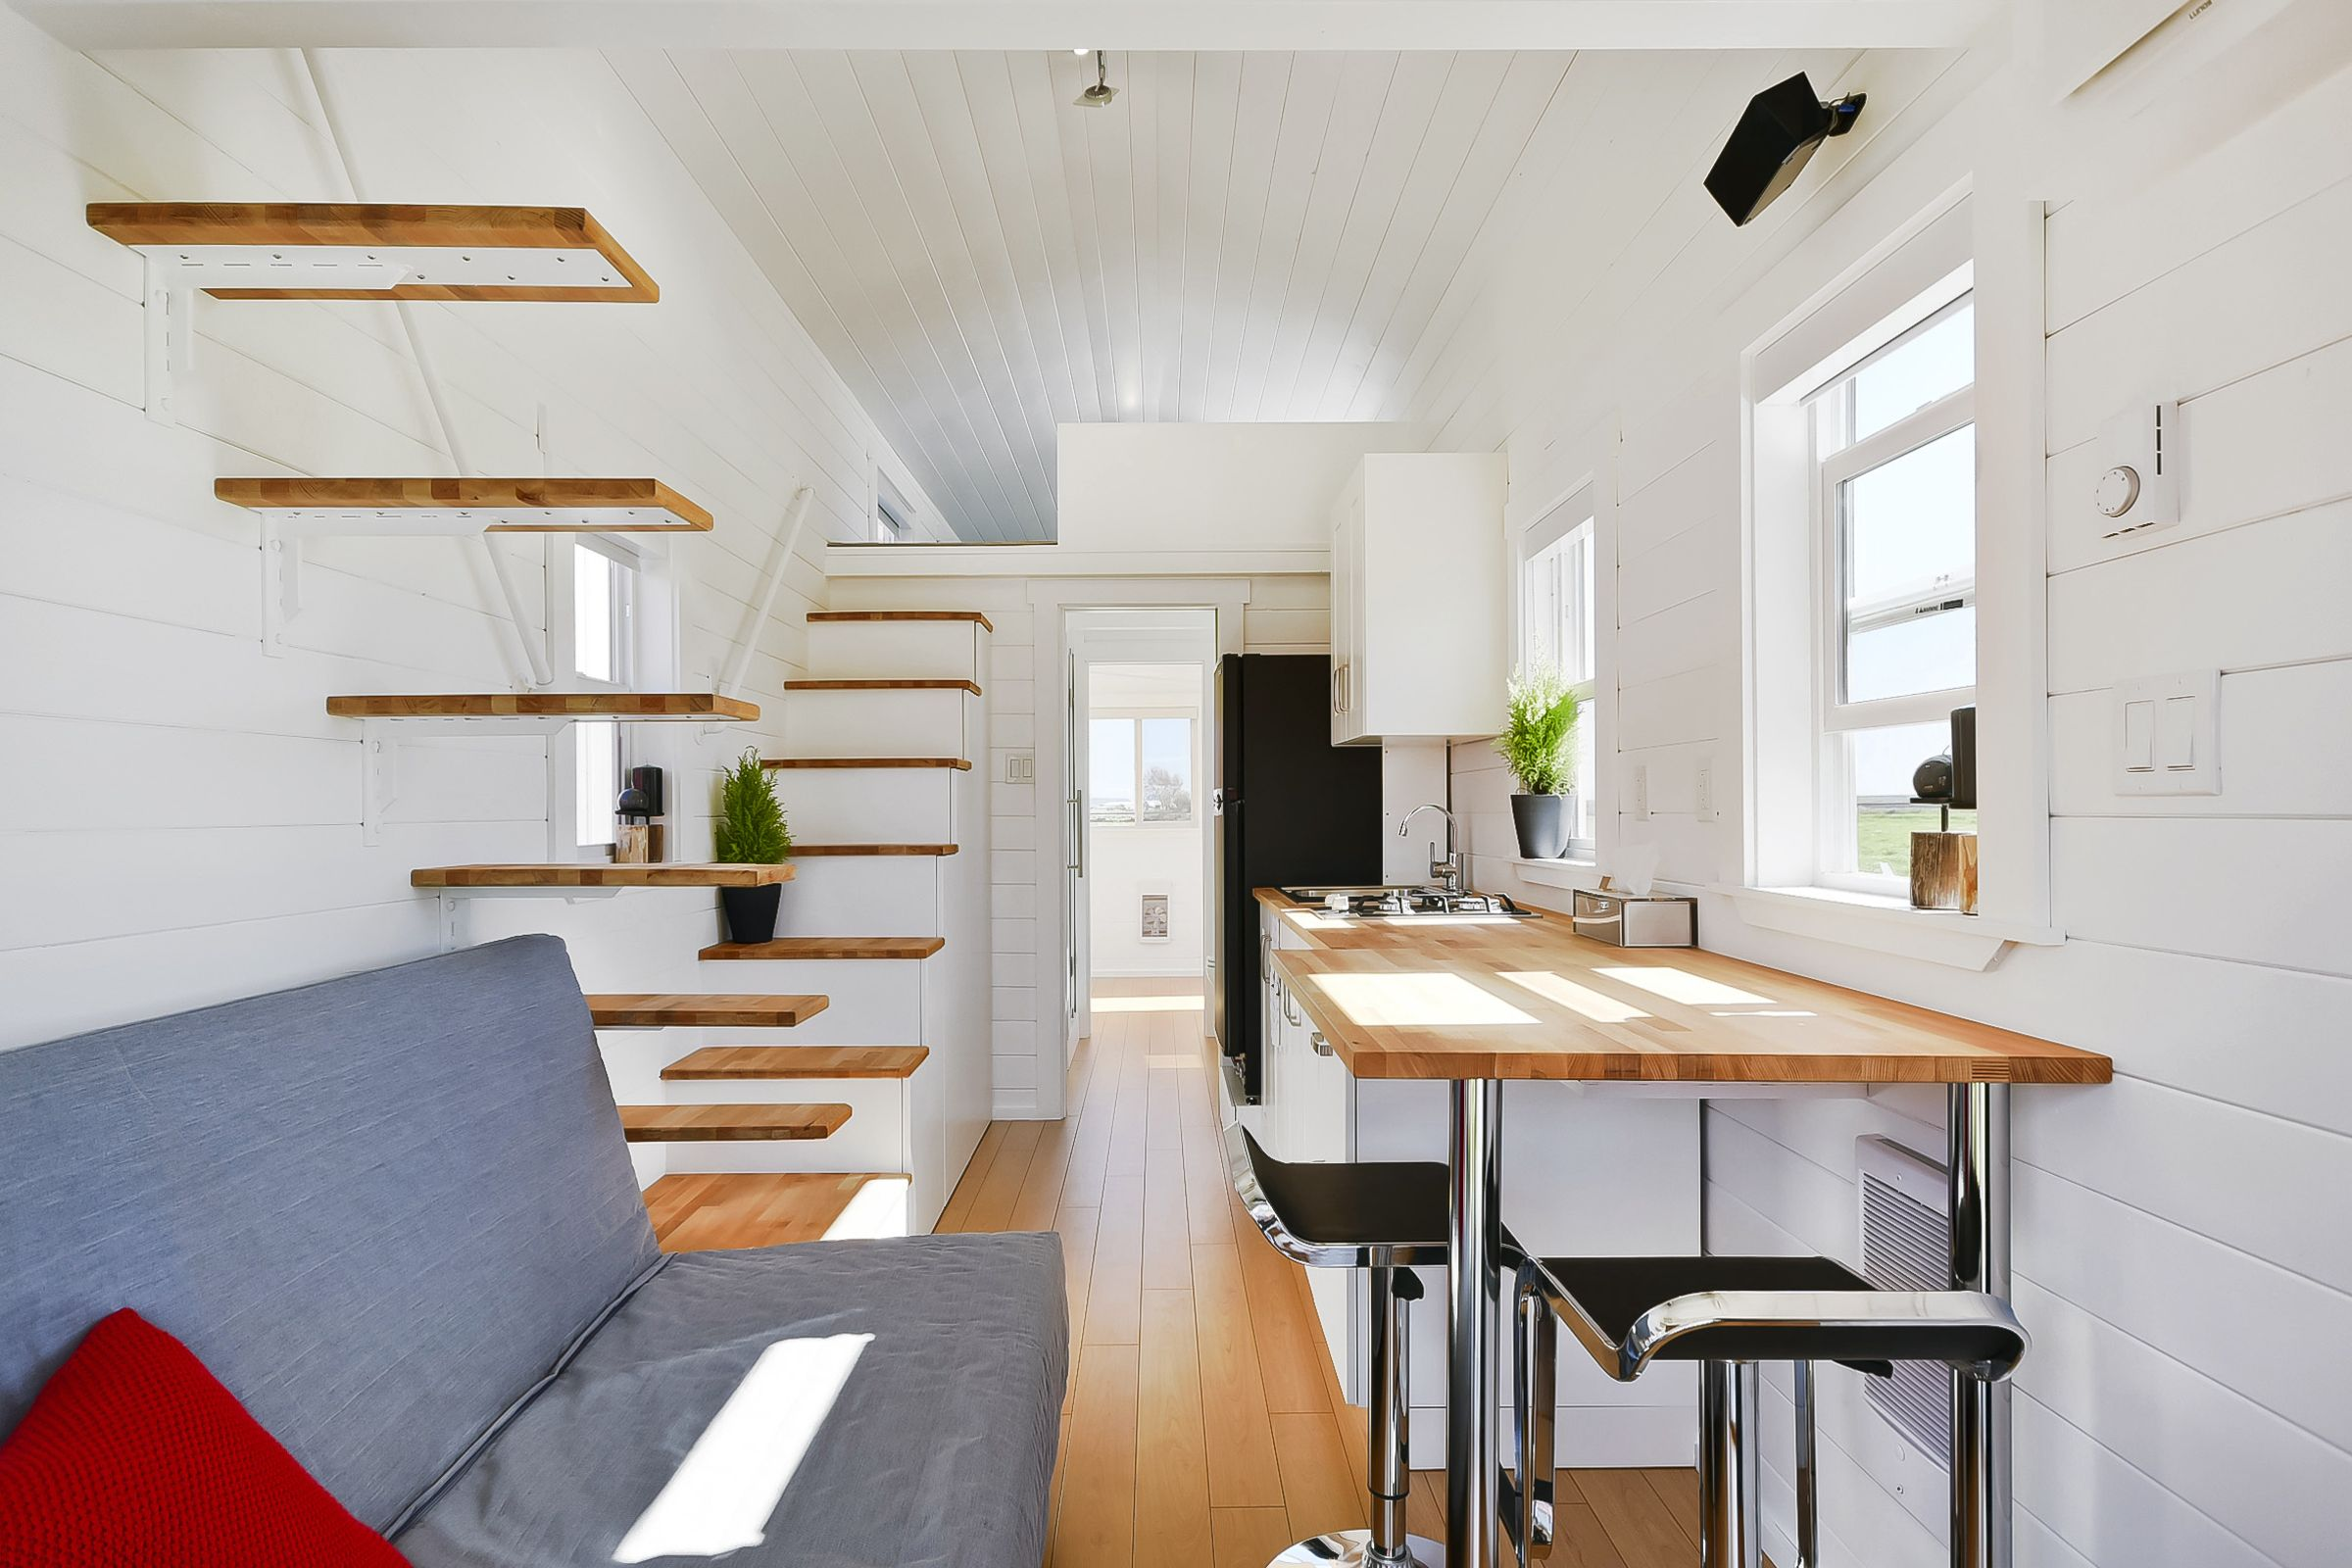 28ft Customized Loft Edition - Tiny House Listings | TINY